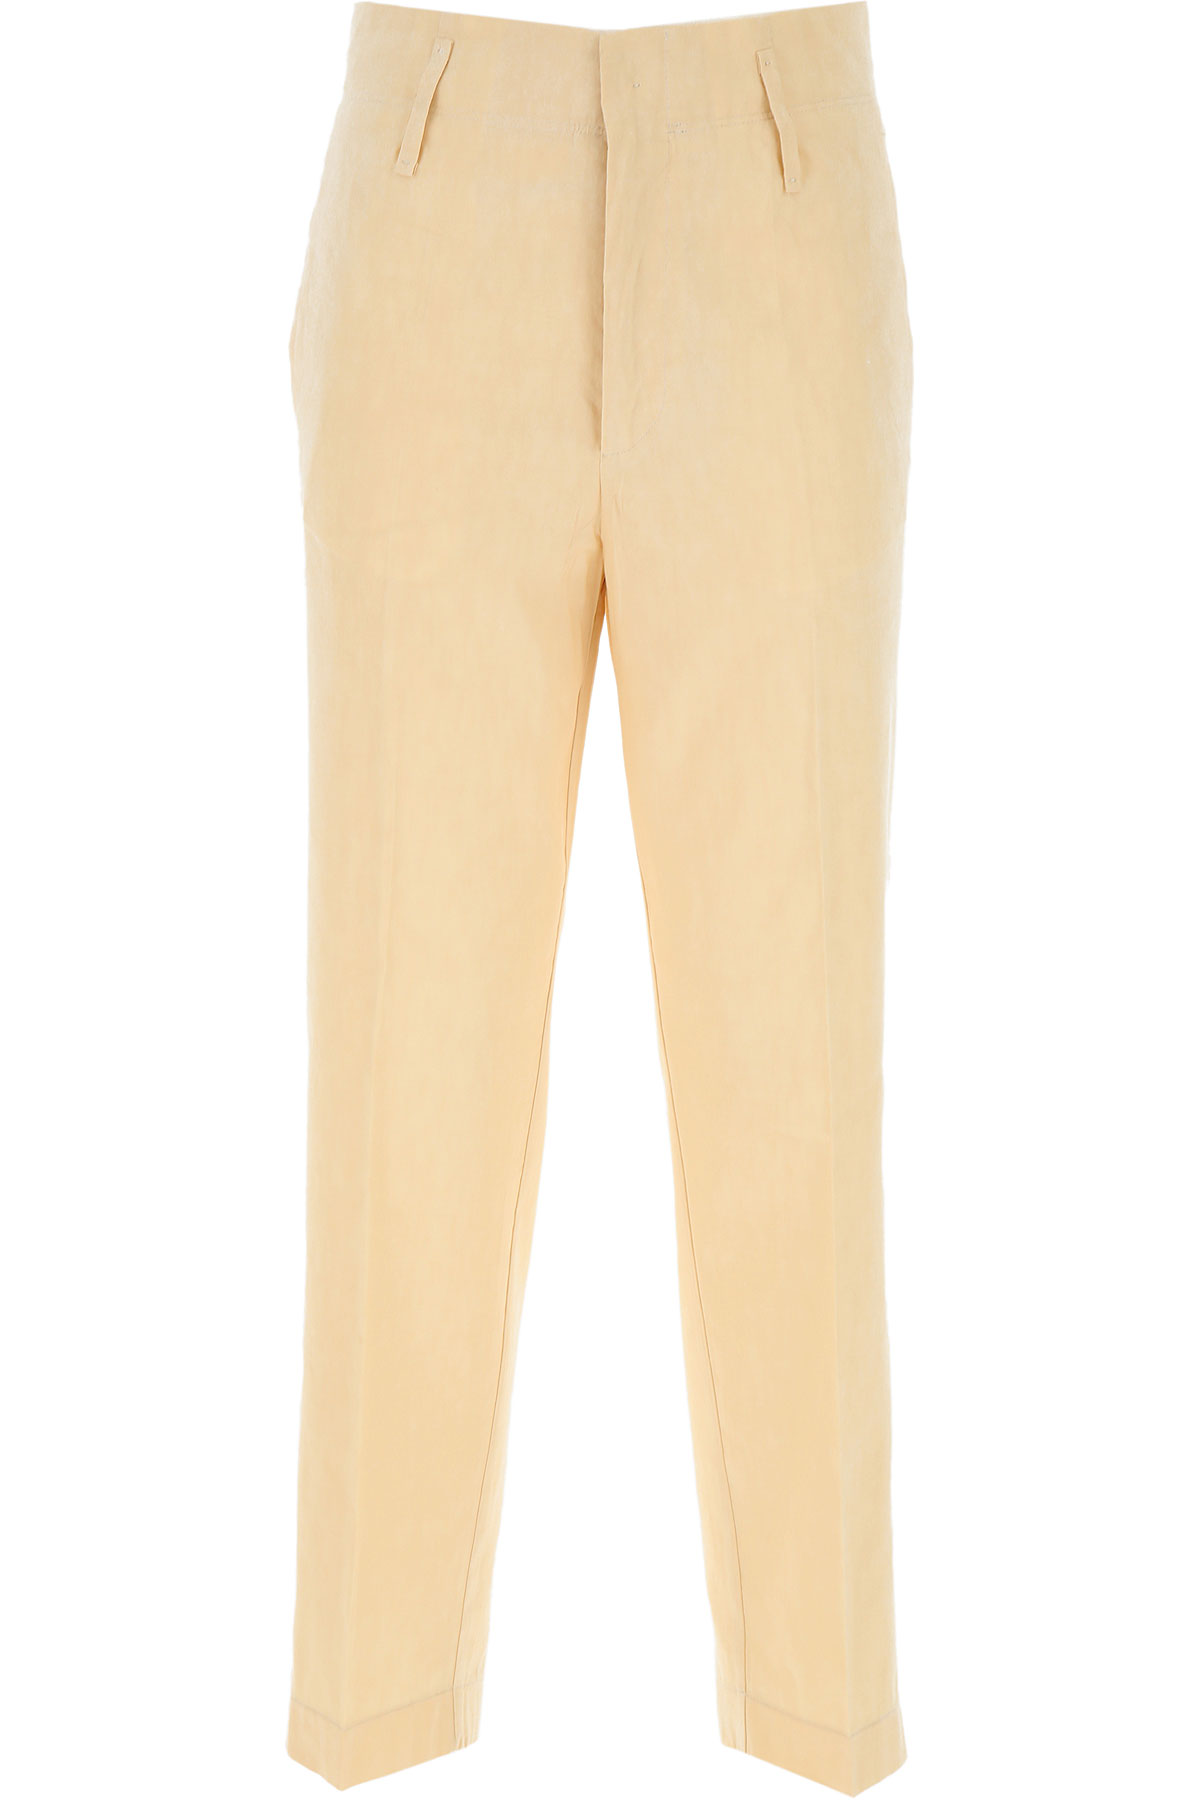 Forte Forte Pants for Women On Sale, Sand, Cotton, 2019